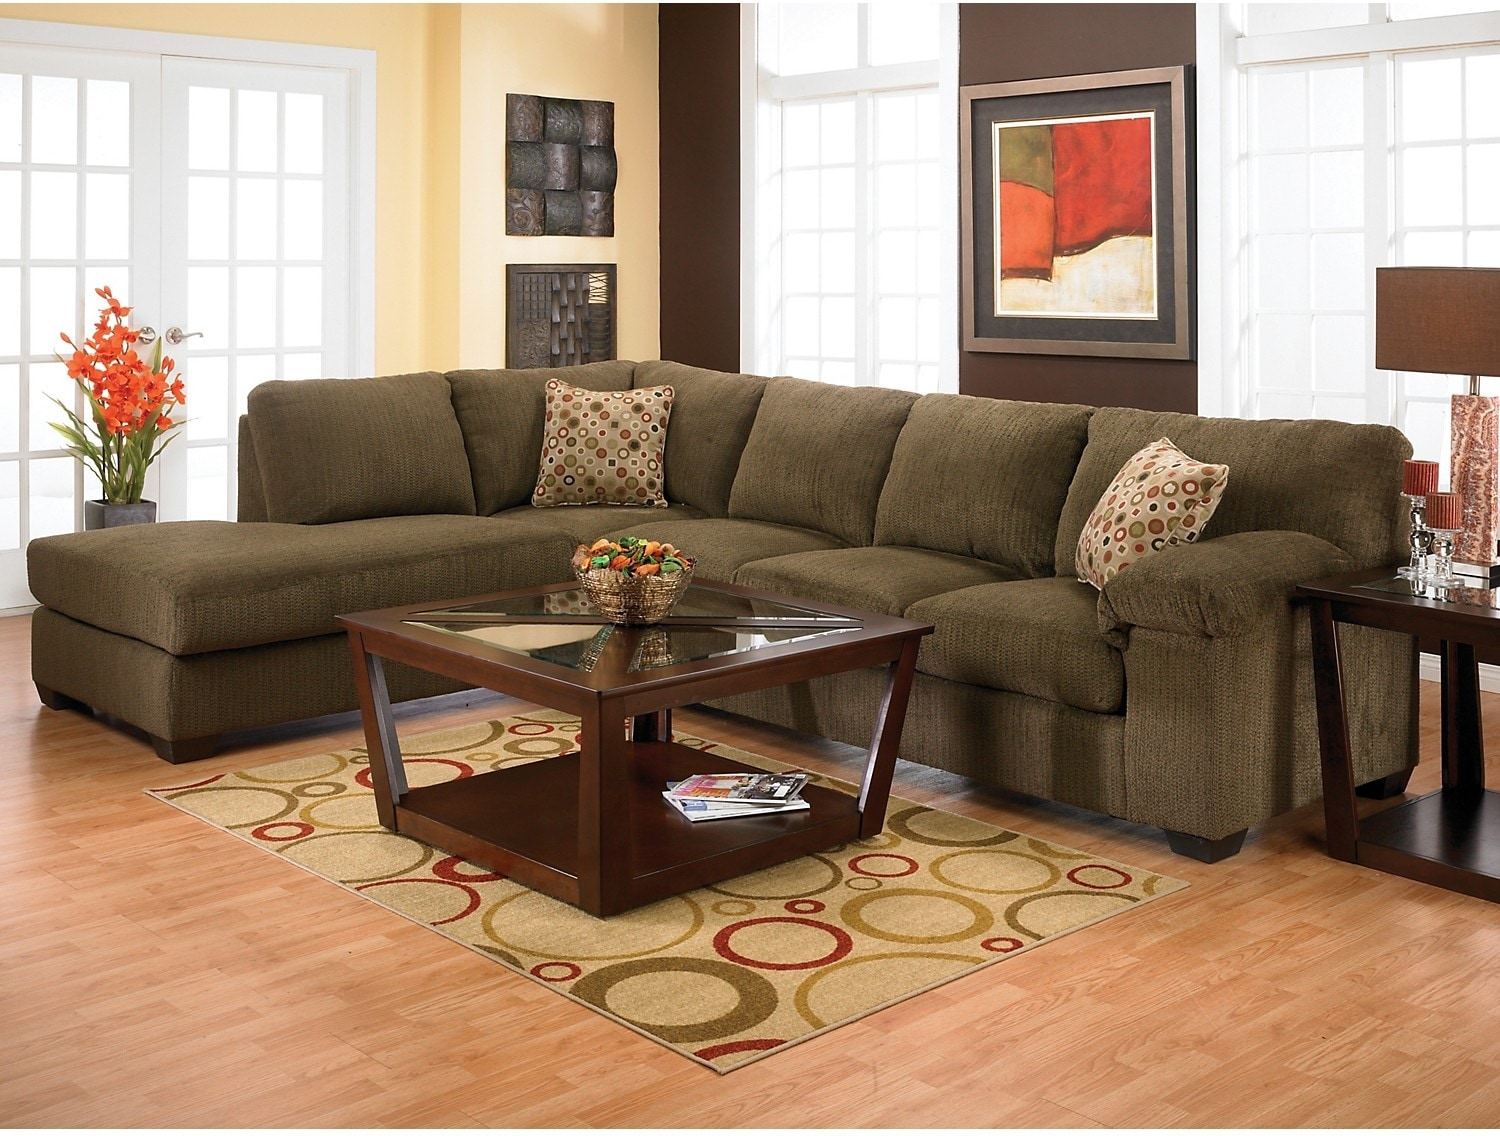 morty chenille sectional with left chaise brown the brick. Black Bedroom Furniture Sets. Home Design Ideas